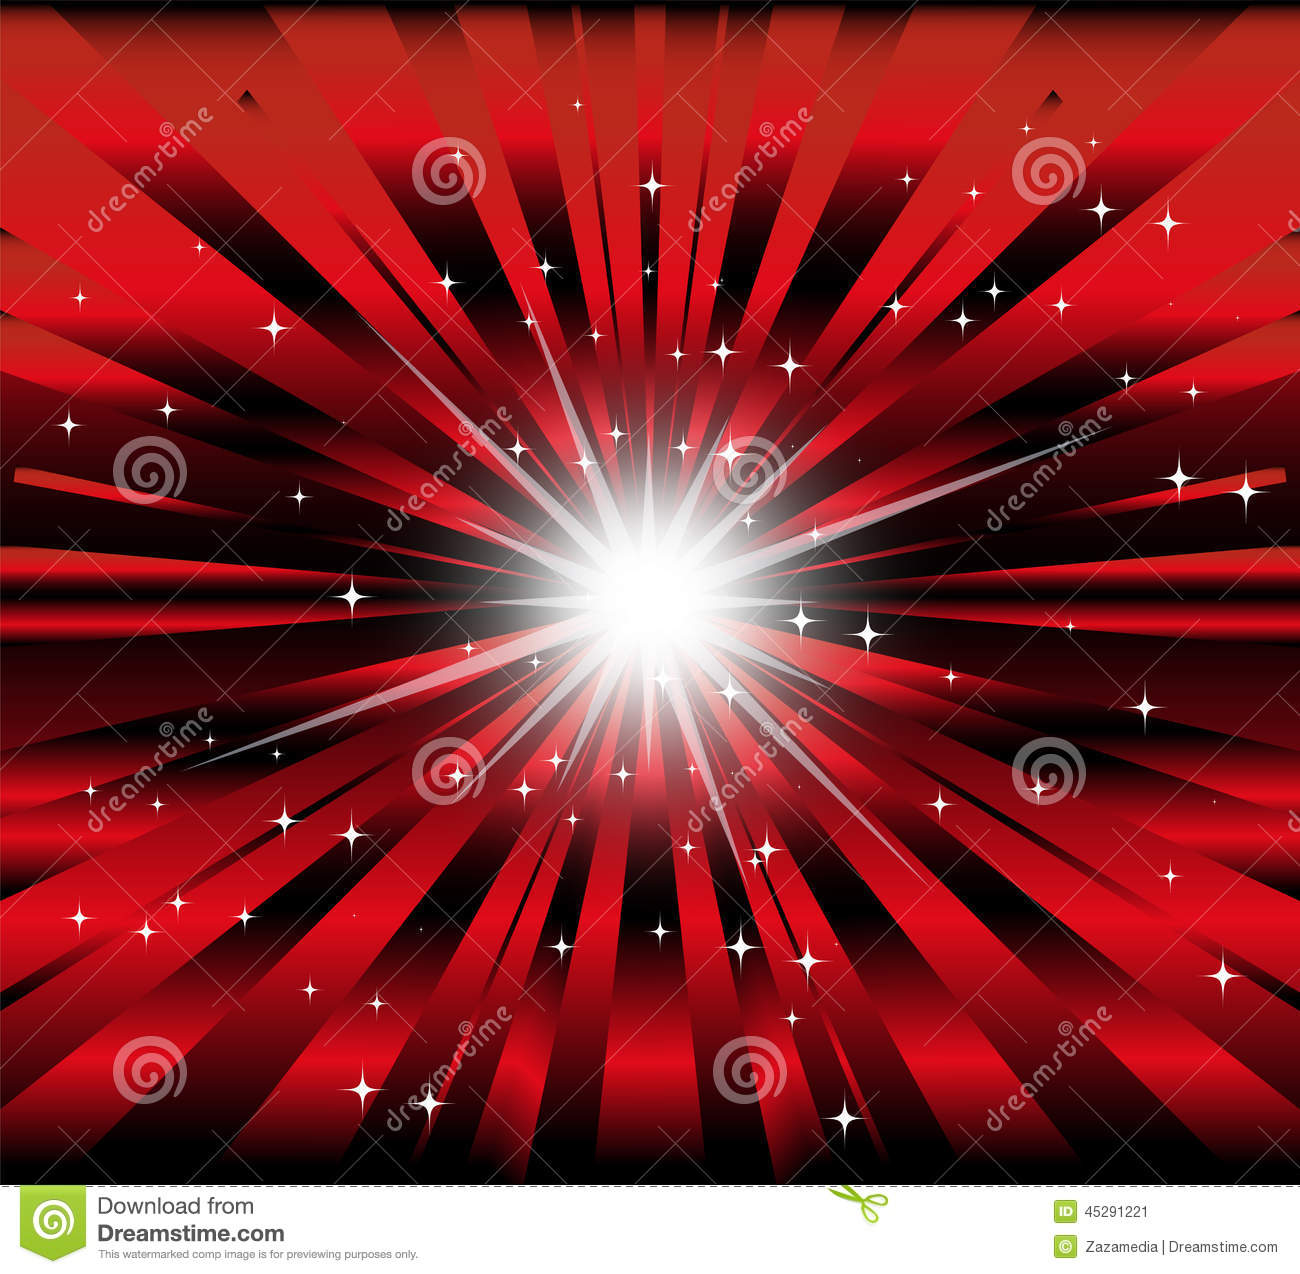 Burst Red And Black Background With Ray Star Light